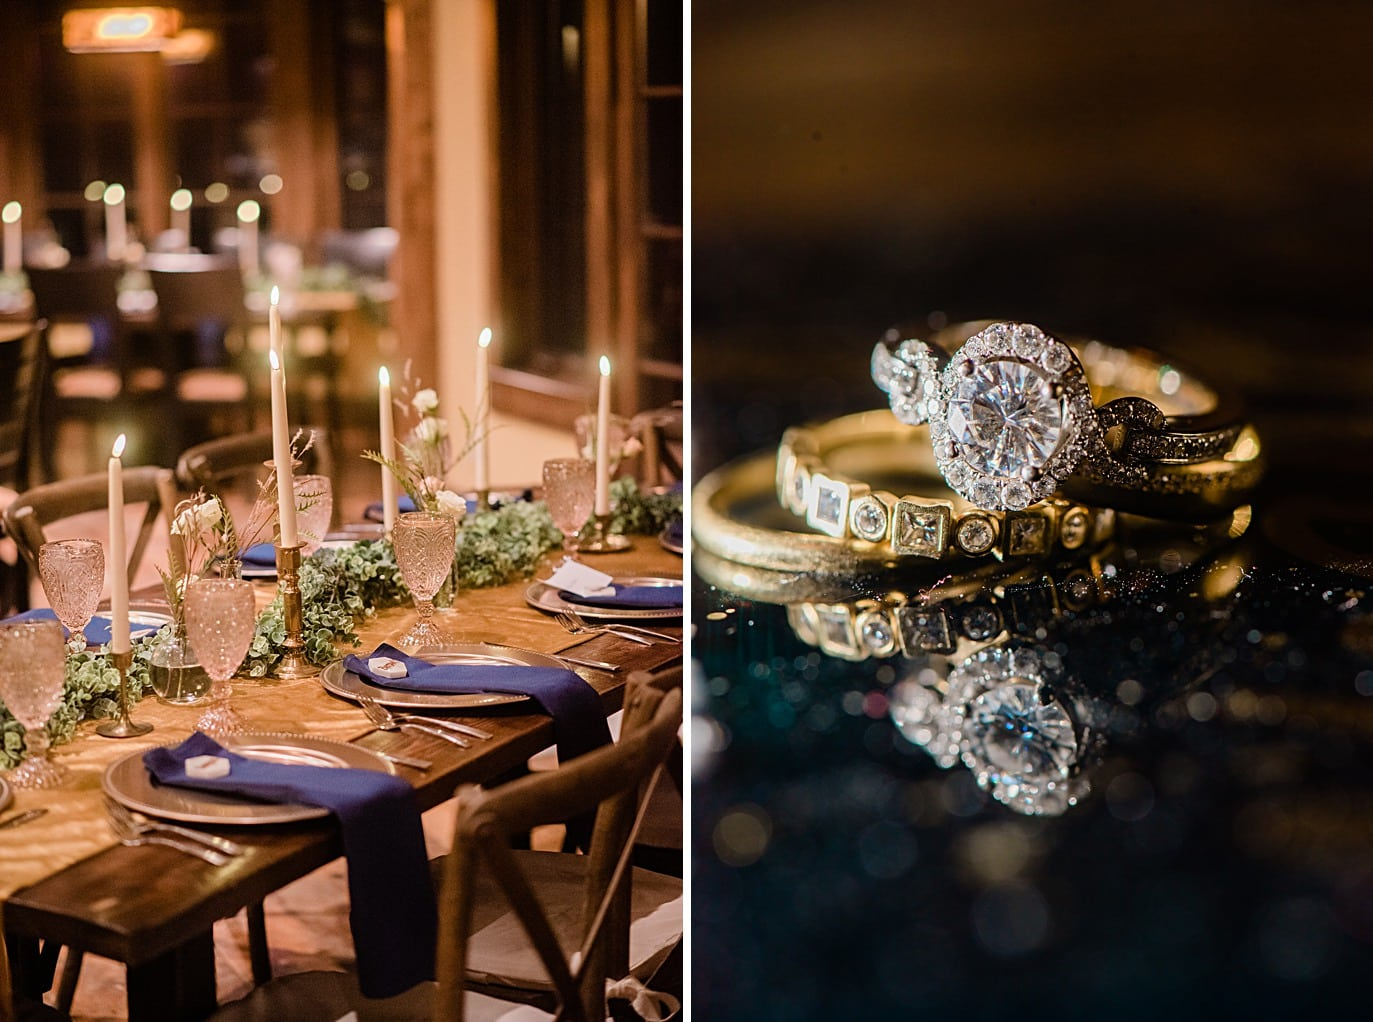 intimate meal at private reception two brides along Boreas Pass road at Breckenridge microwedding by Breckenridge wedding photographer Jennie Crate